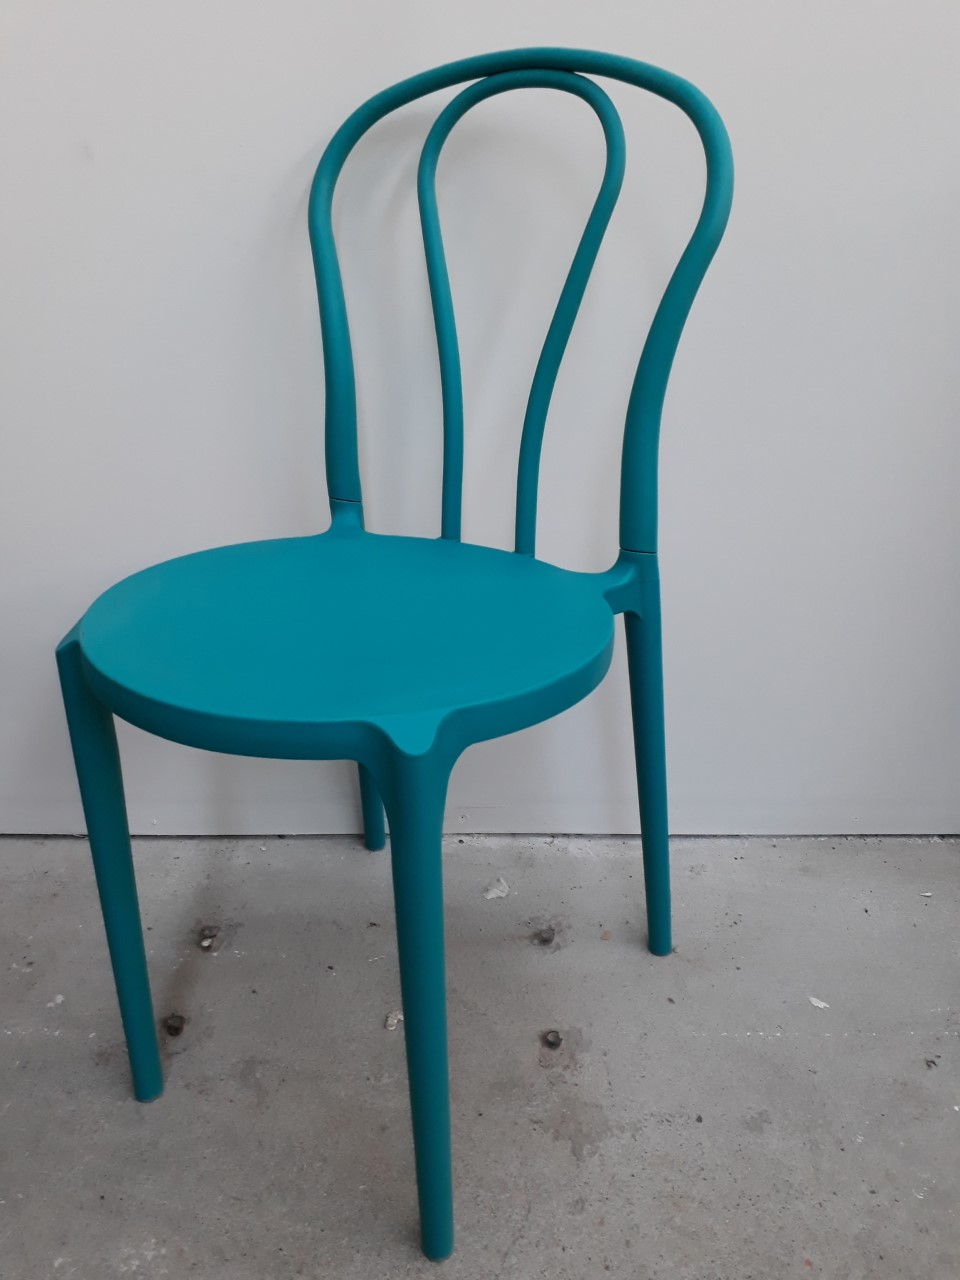 PARKER Teal CHAIRS  .. WINTER CLEARANCE                      for          $ 55.00ea  ex-warehouse + gst...